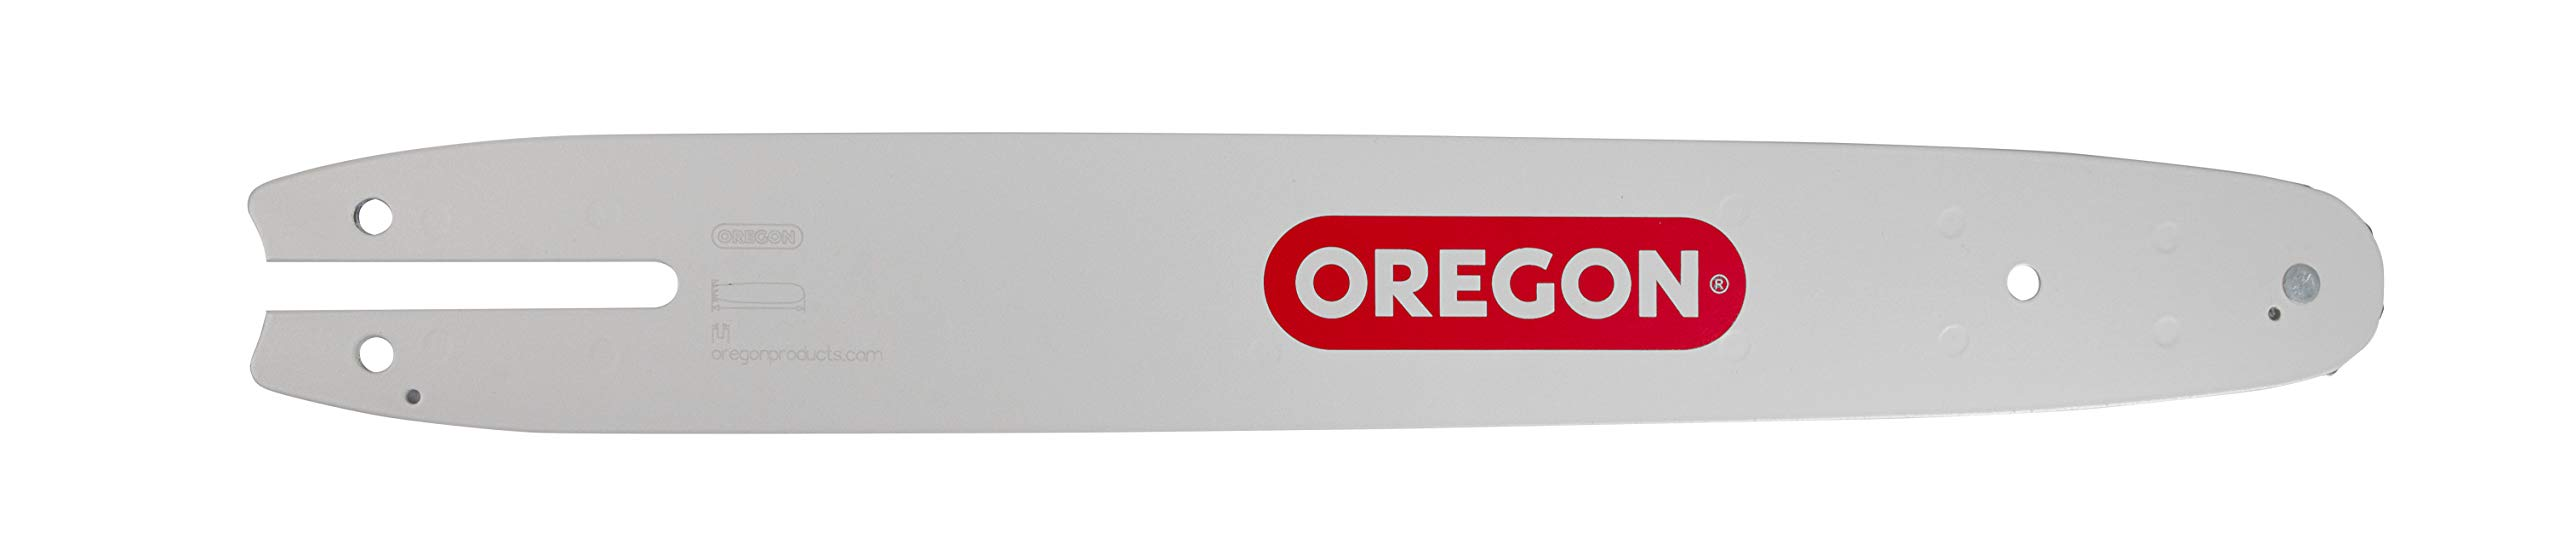 Oregon 160SDEA041 Chainsaw Double Guard Bar With 0.050-Inch Gauge x 0.375-Inch Low Pro Pitch, 16-Inches by Oregon